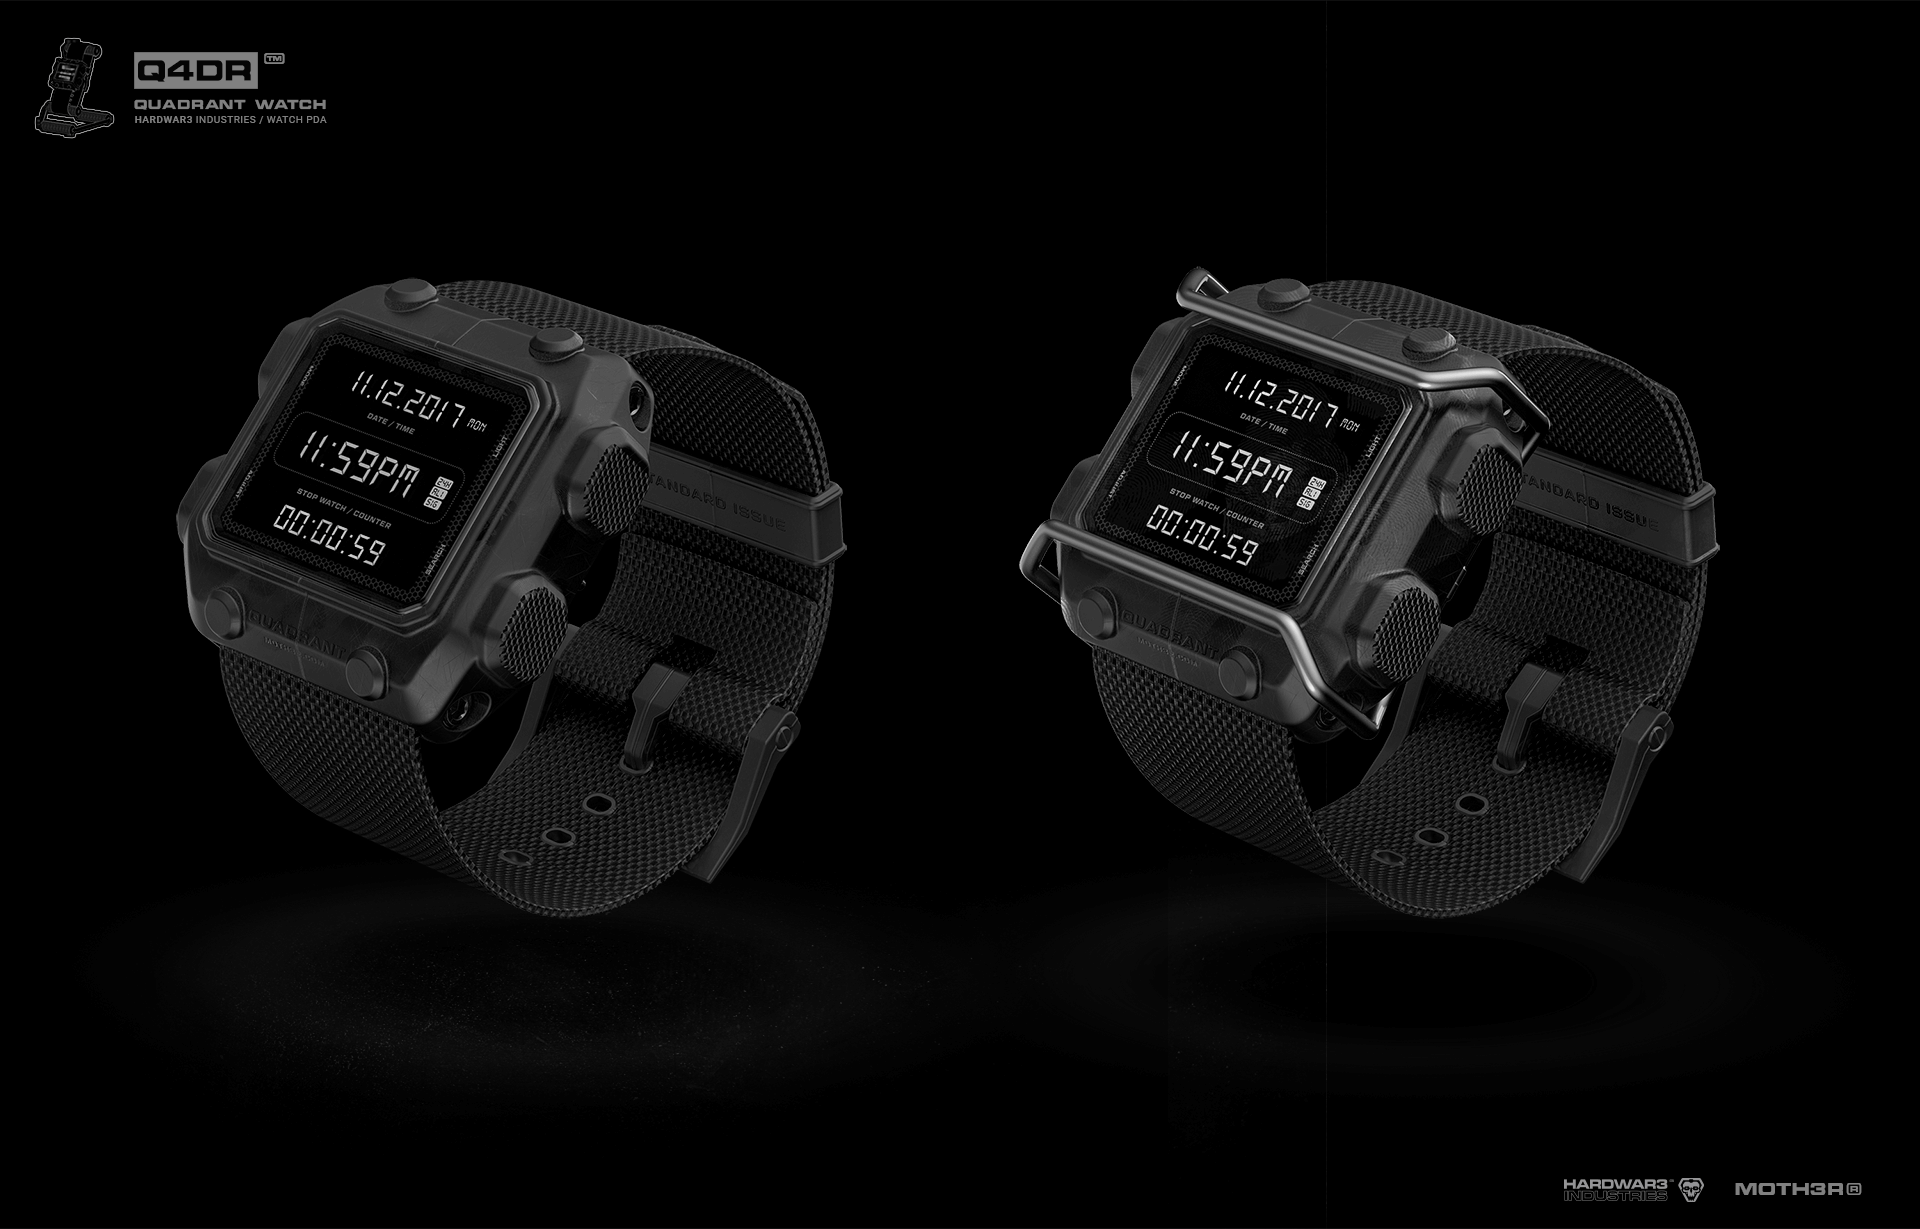 Watch-Render-h01-Duals-Black